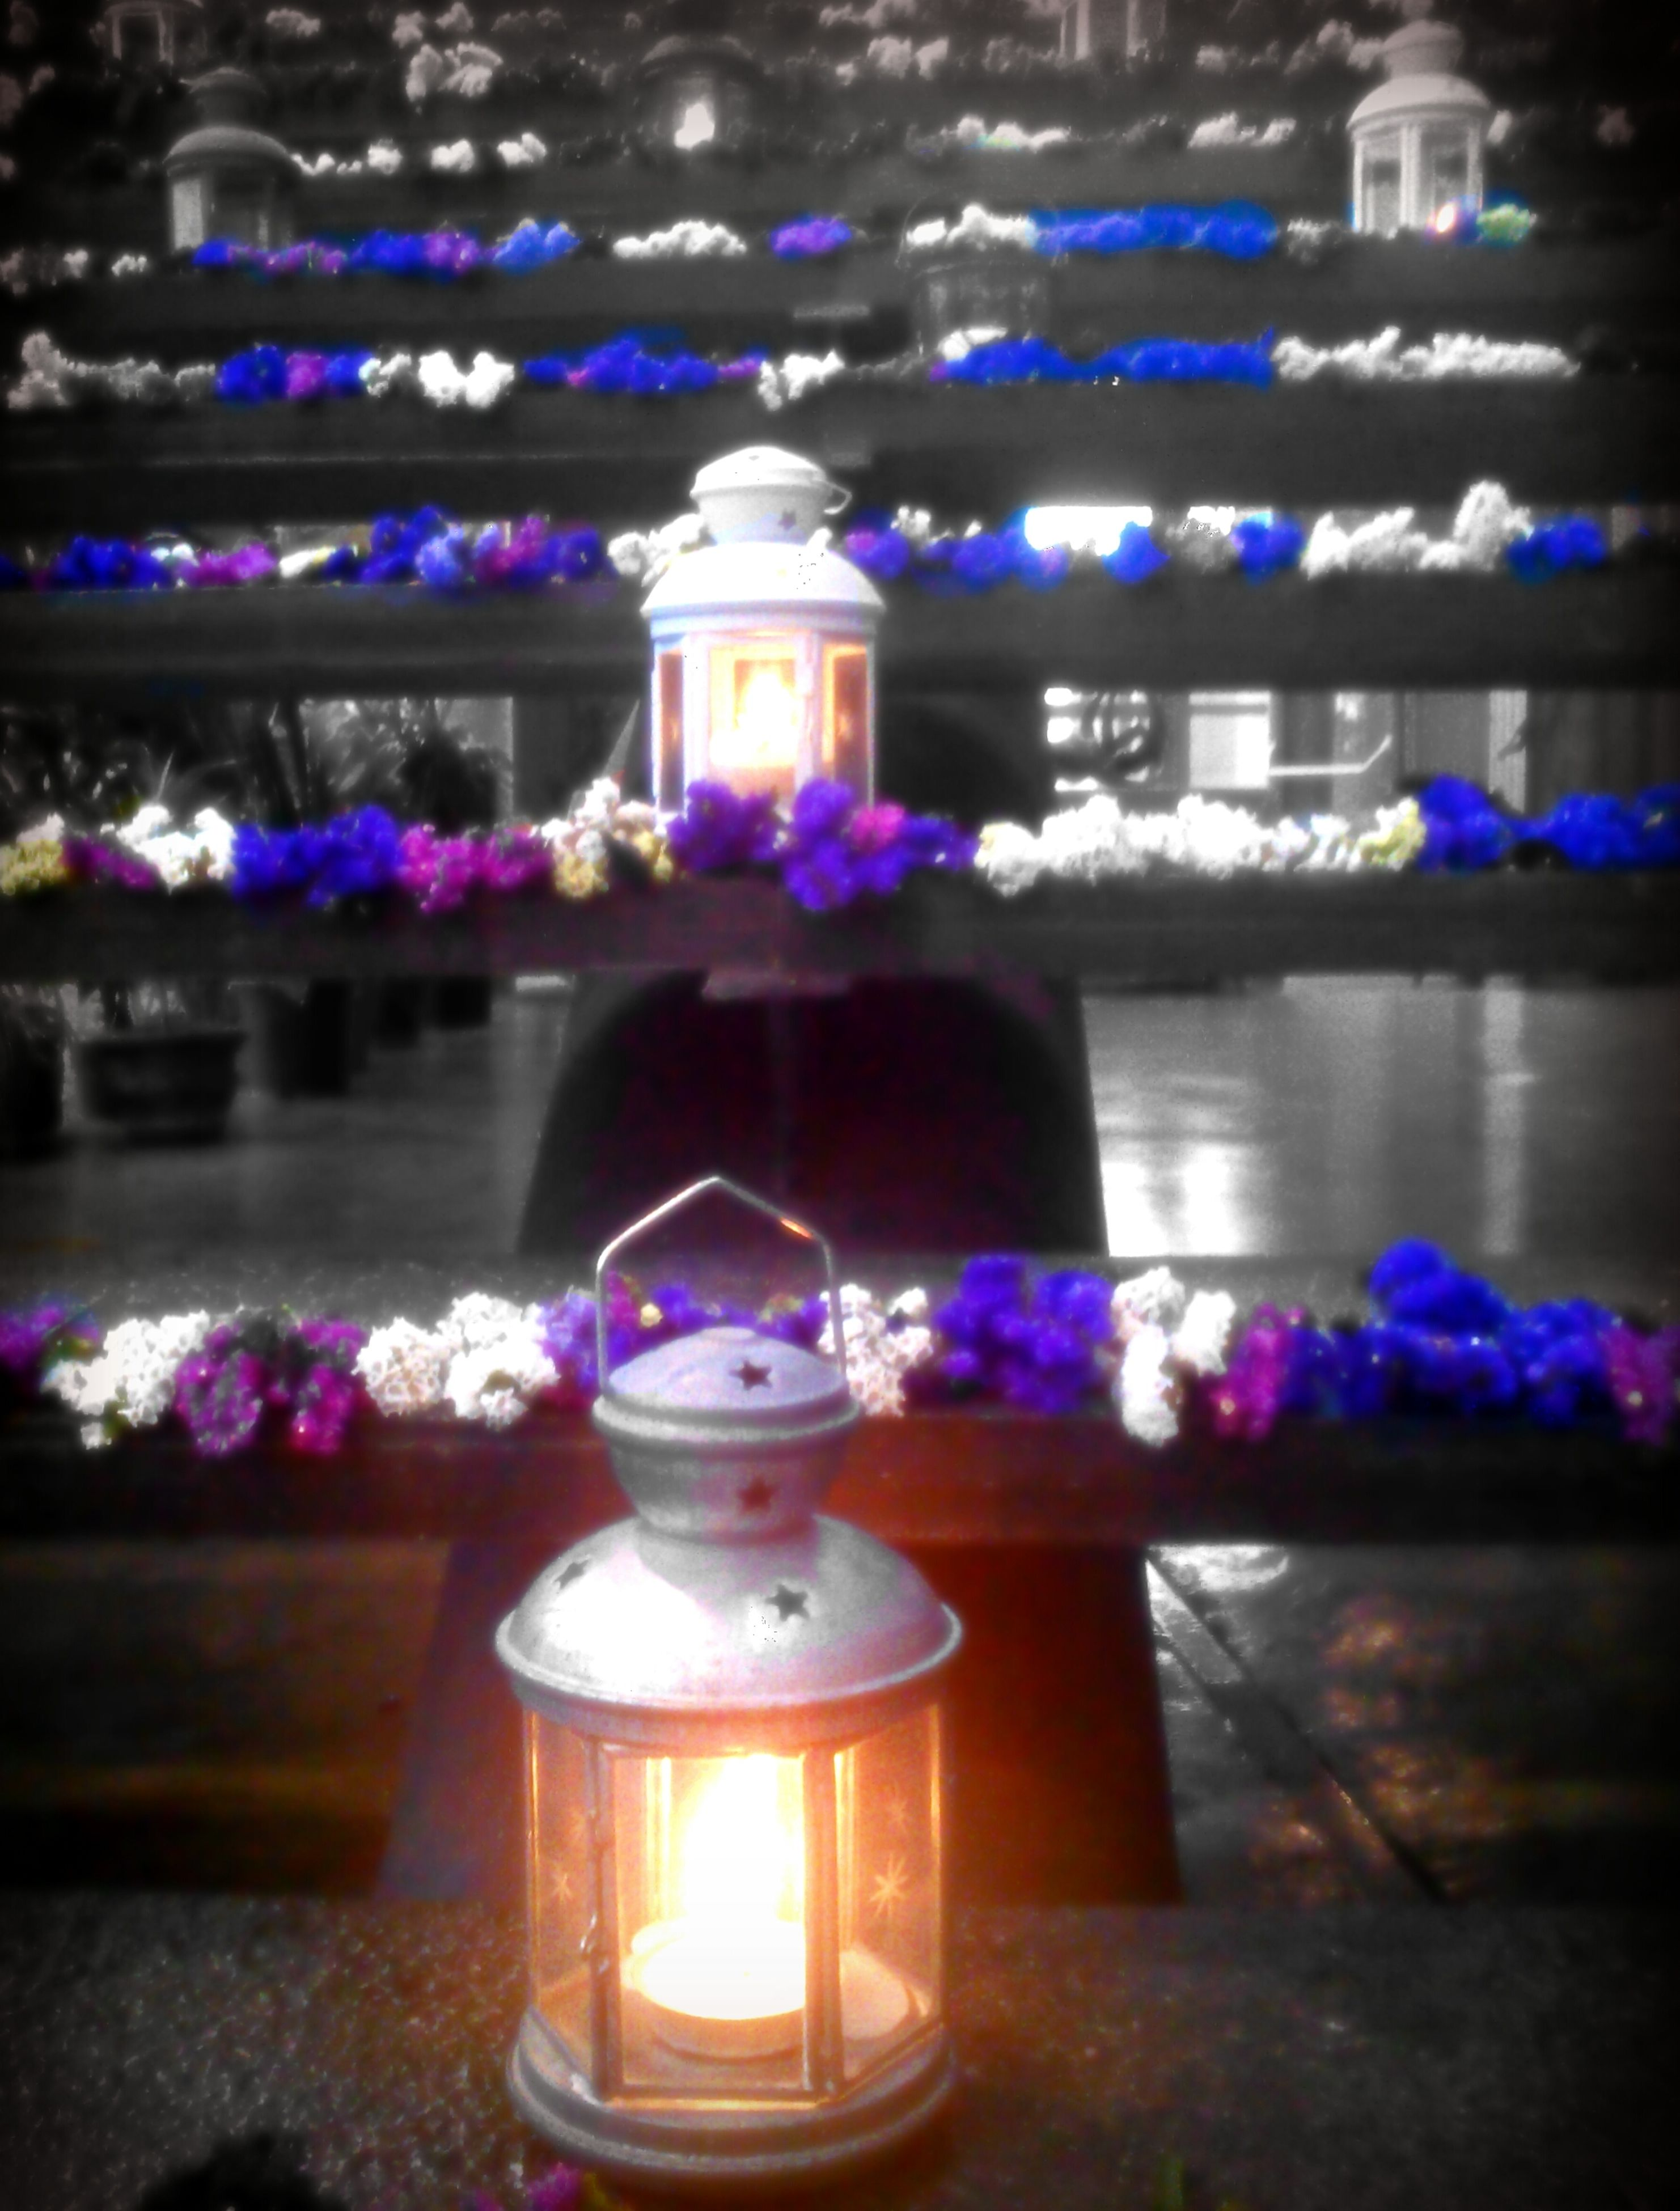 illuminated, lighting equipment, flower, candle, glowing, decoration, indoors, night, religion, lit, focus on foreground, flame, close-up, celebration, light - natural phenomenon, spirituality, place of worship, glass - material, burning